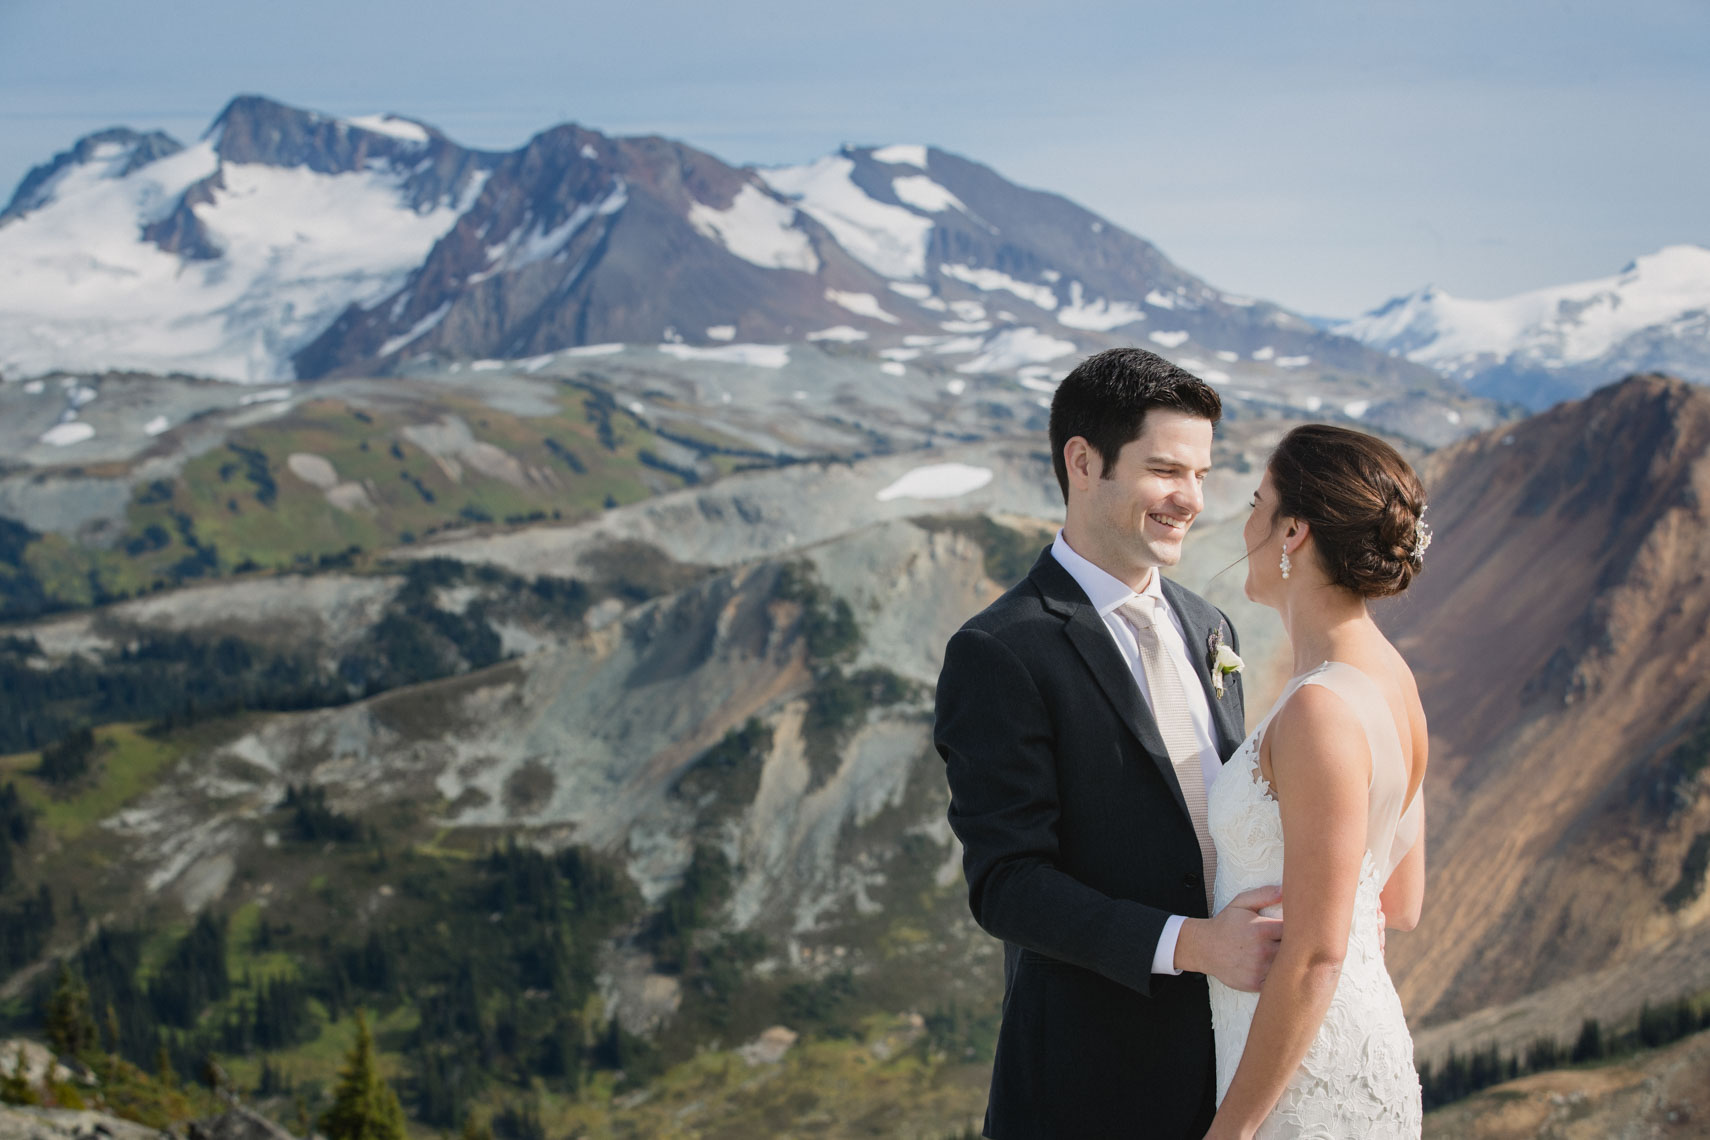 Bride and groom in the mountains of Whistler, BC